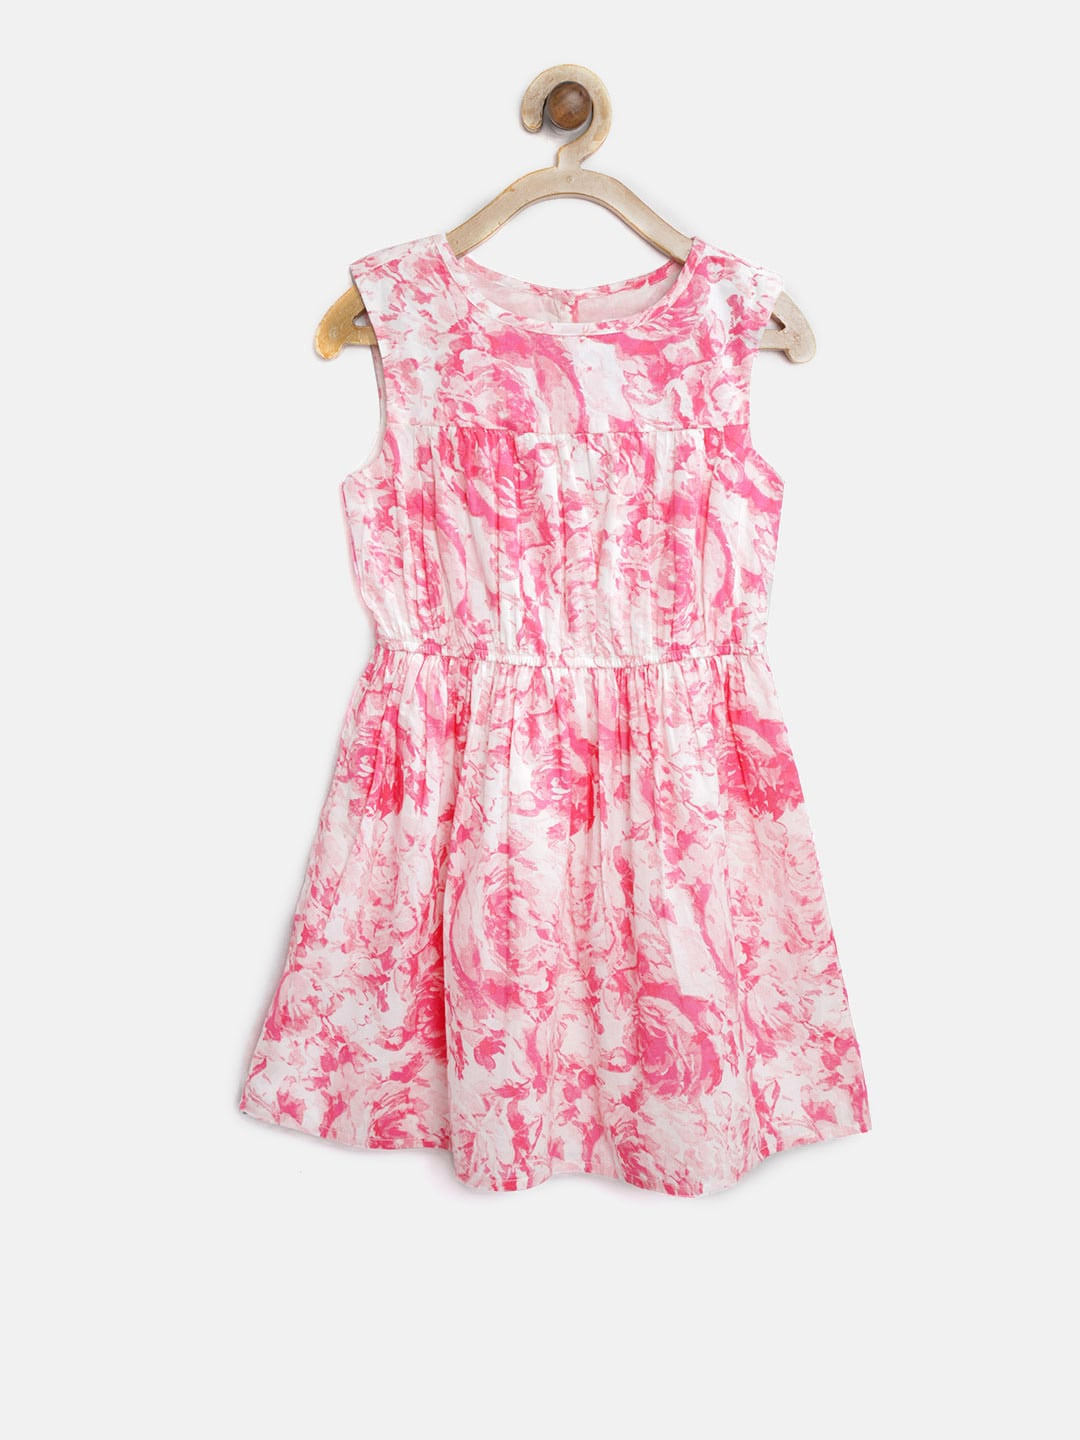 7f176795d Kids Dresses - Buy Kids Clothing Online in India